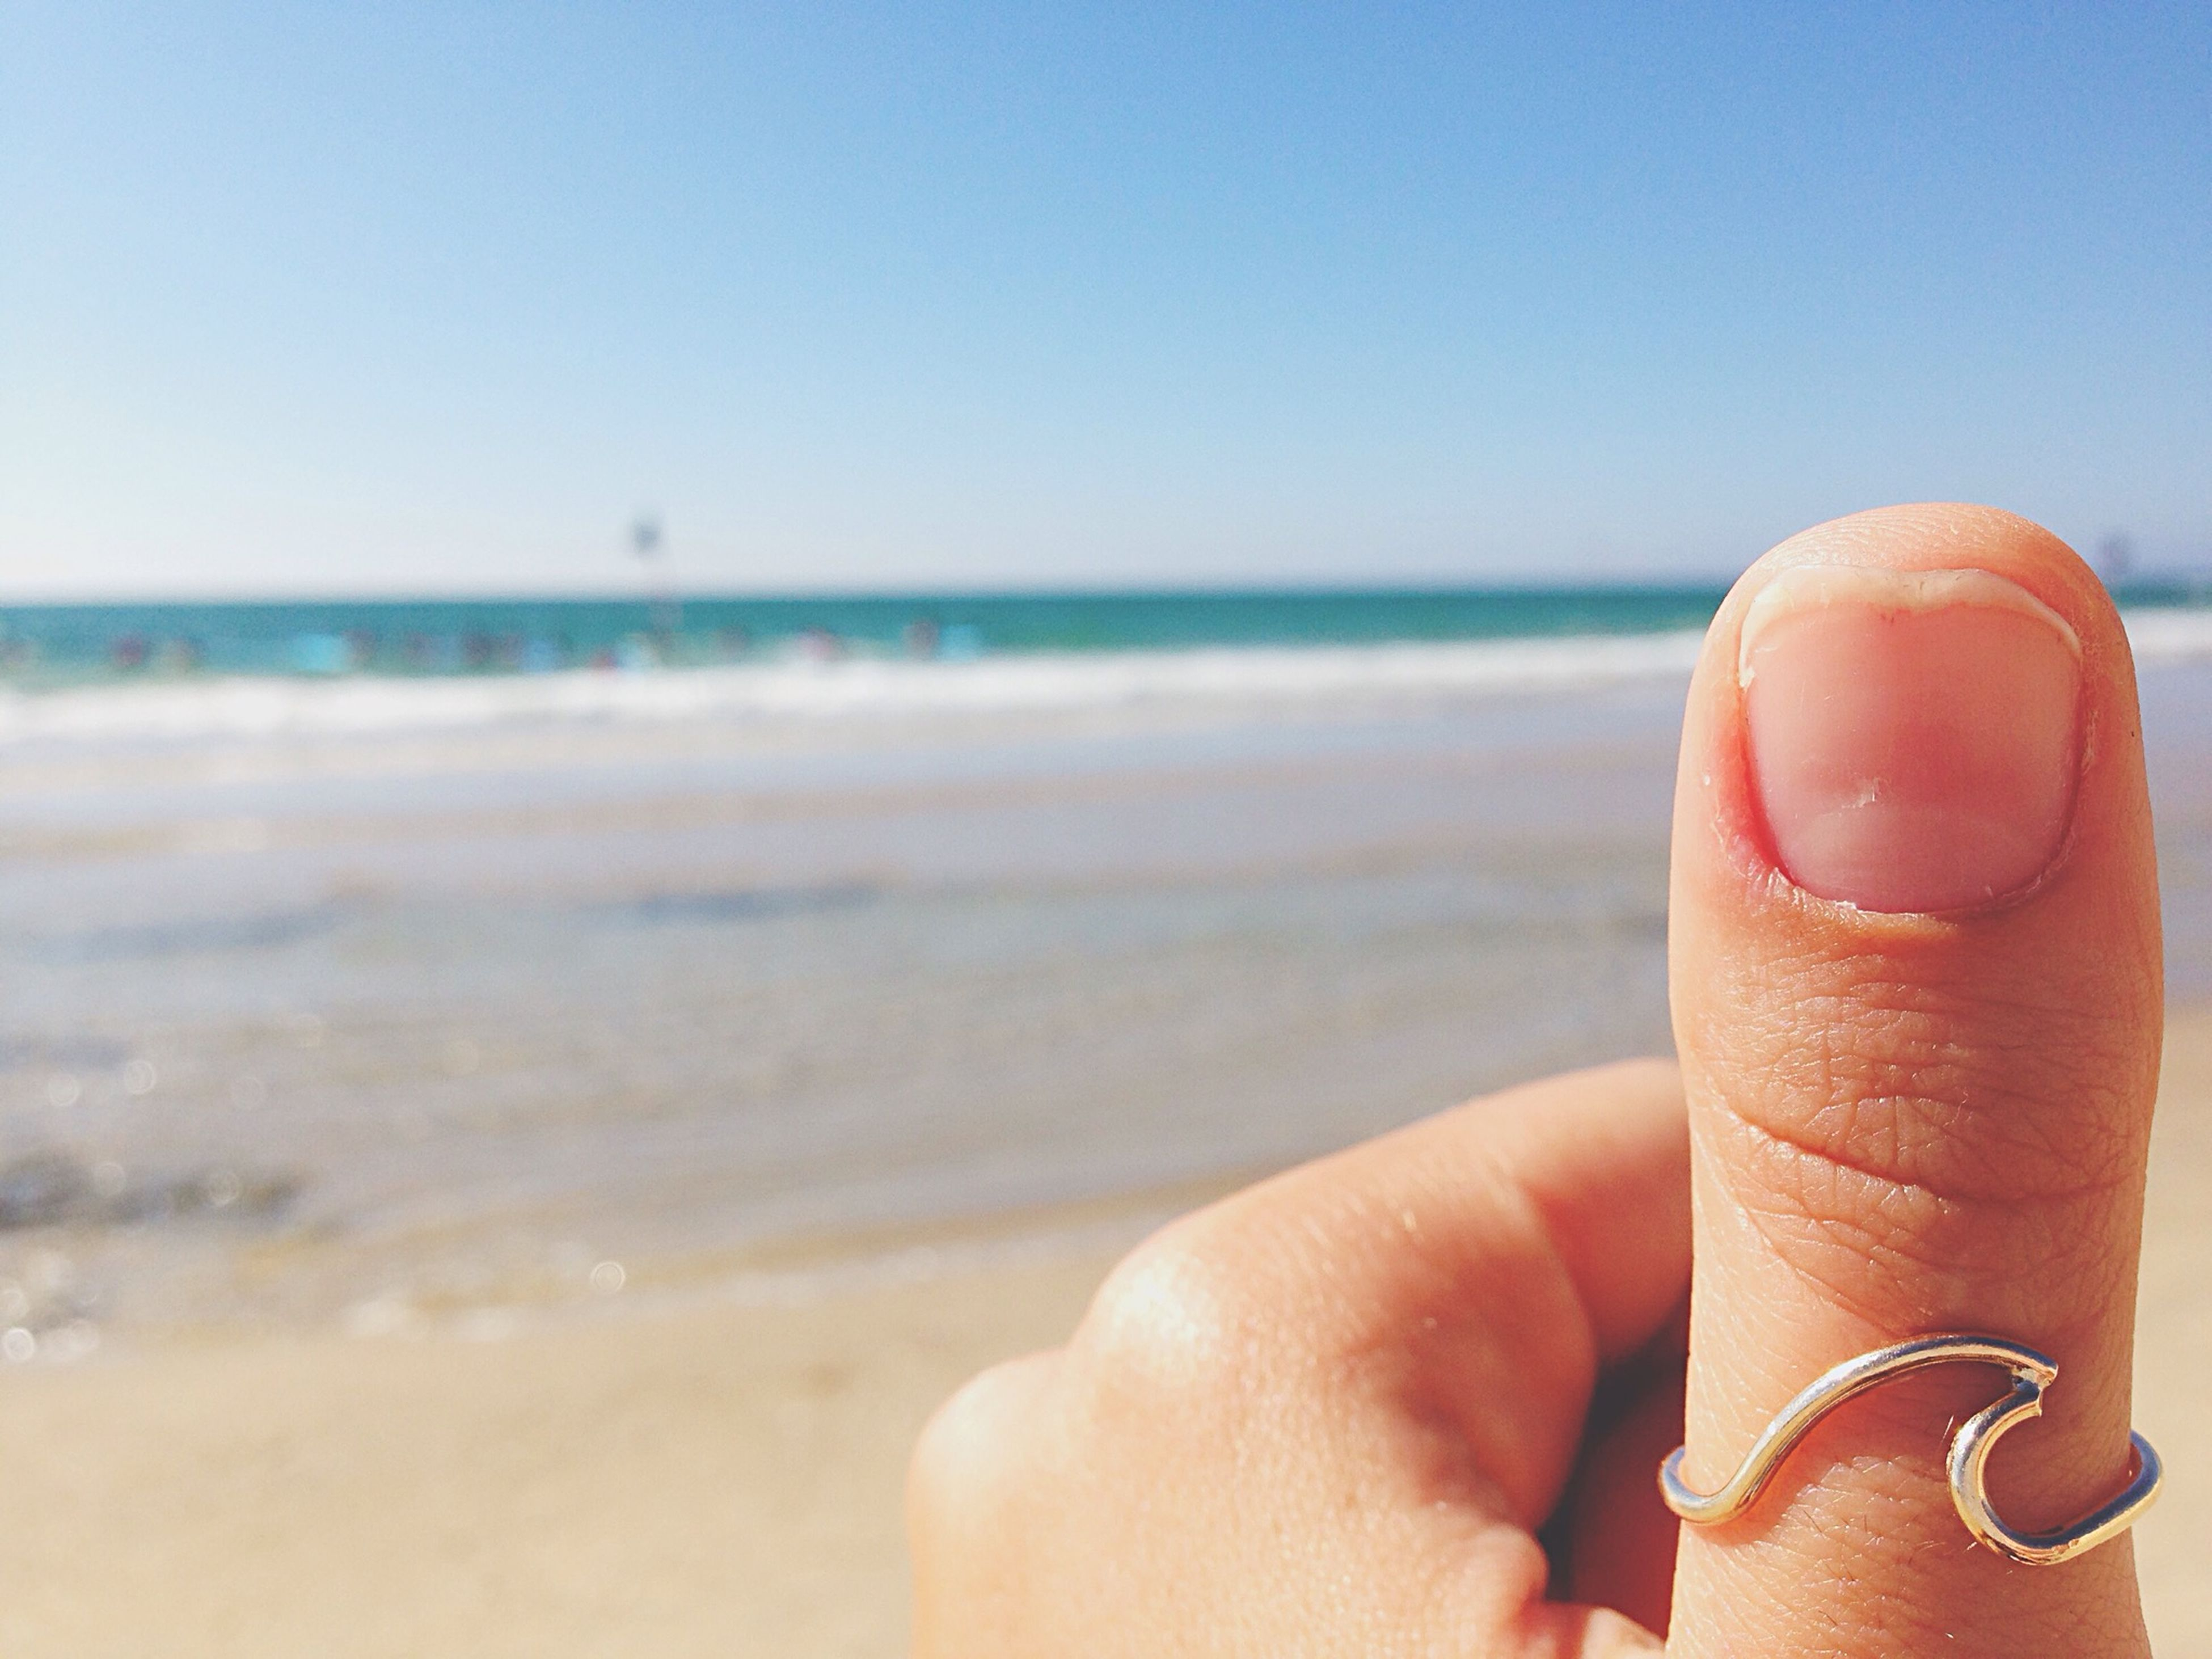 sea, horizon over water, beach, person, water, part of, cropped, clear sky, holding, personal perspective, lifestyles, leisure activity, copy space, sand, shore, close-up, focus on foreground